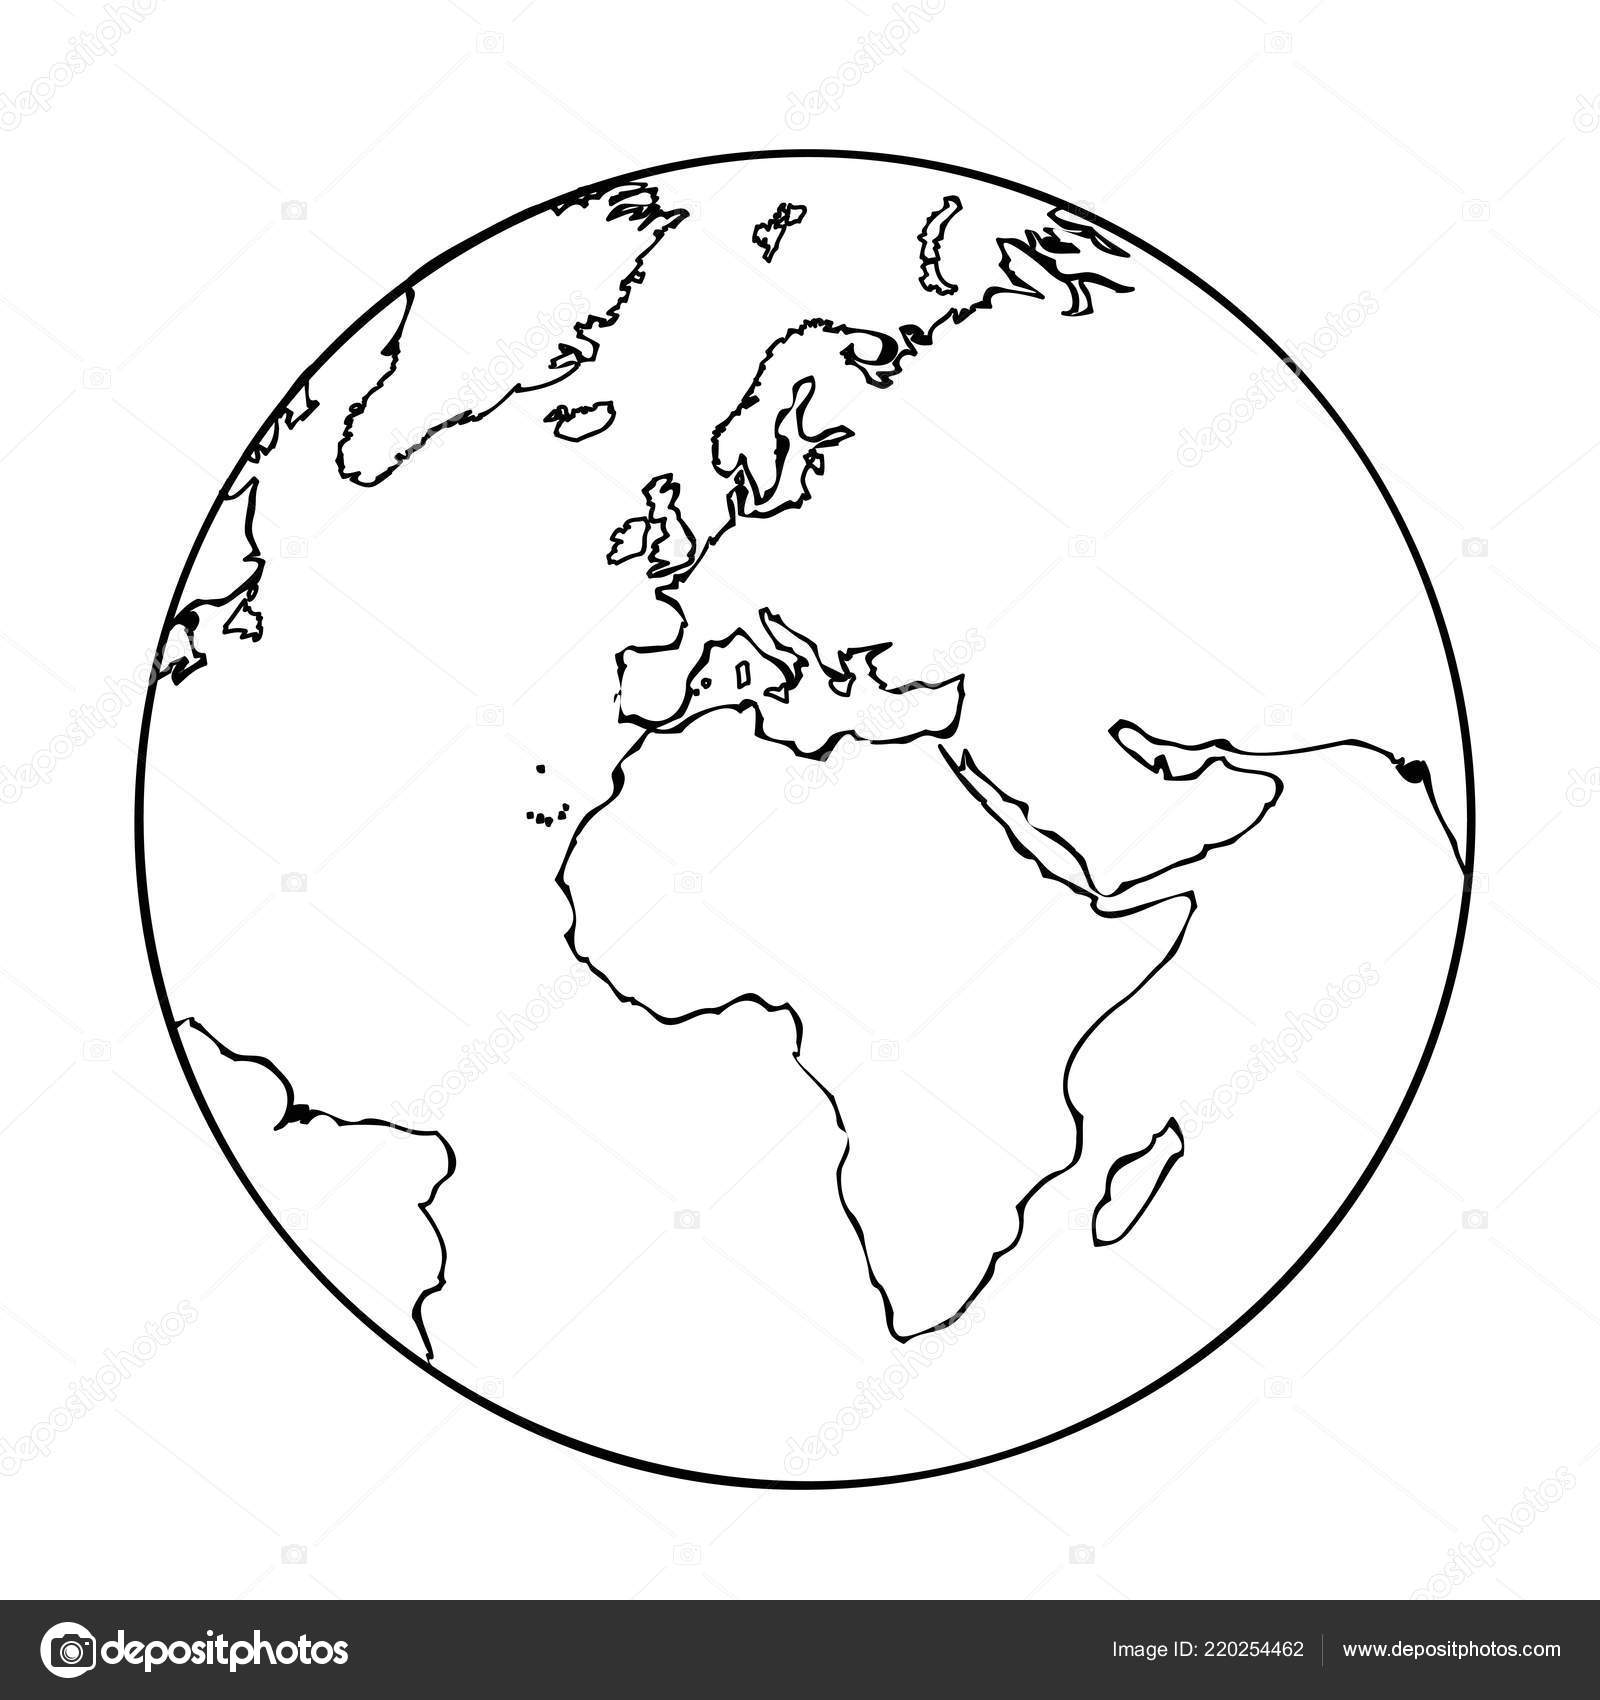 earth globe simple icon pictogram outline — Stock Vector